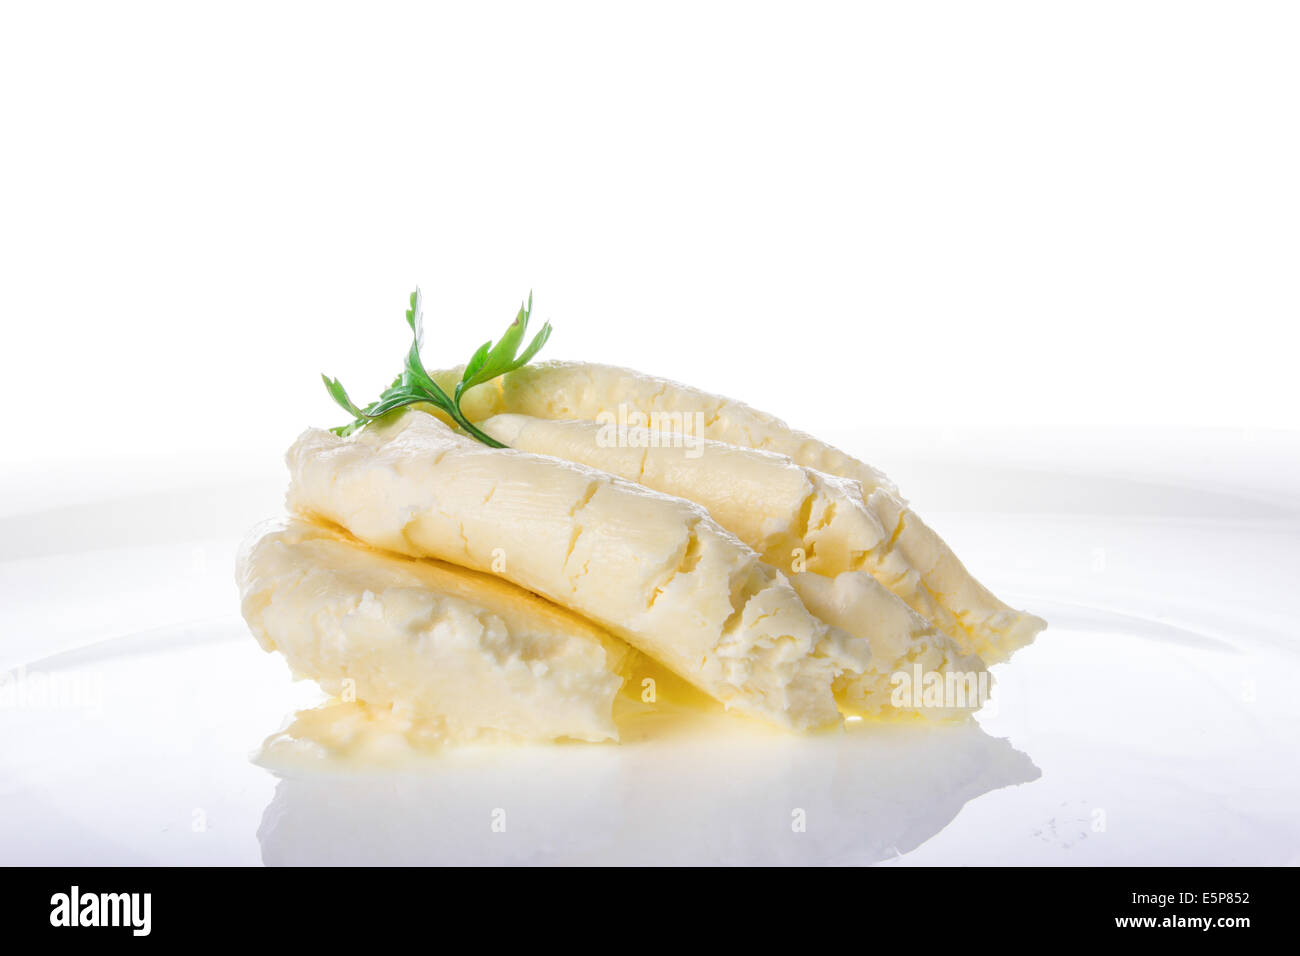 cream cheese milk product portion on white plate with parsley on top; soft cheese cream - Stock Image